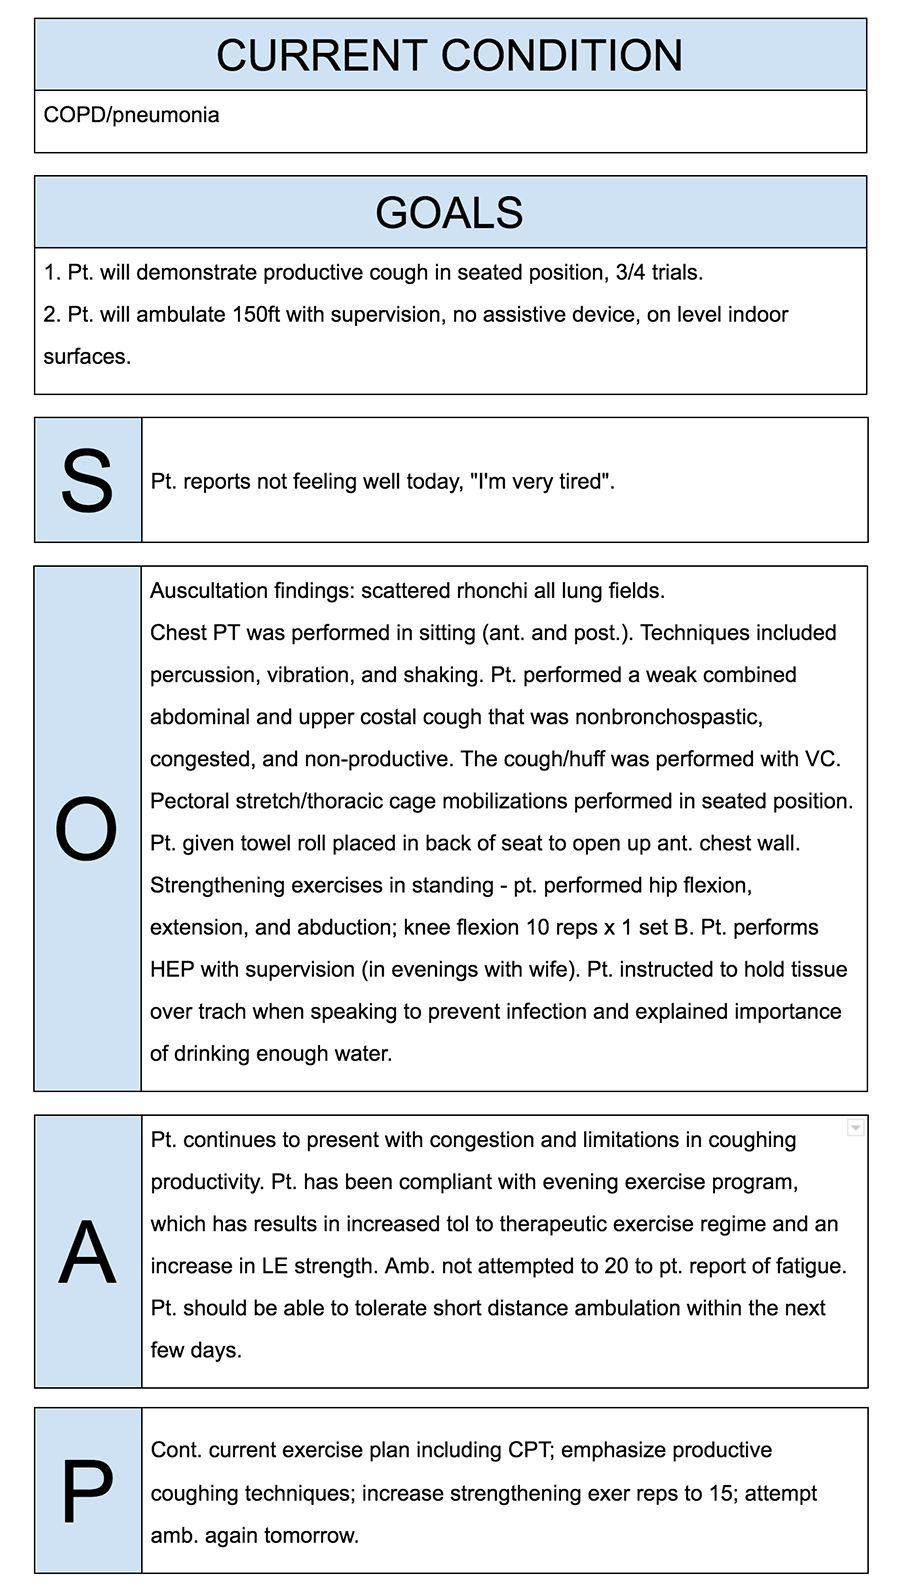 free soap note template - physical therapist soap notes example quotes pinterest